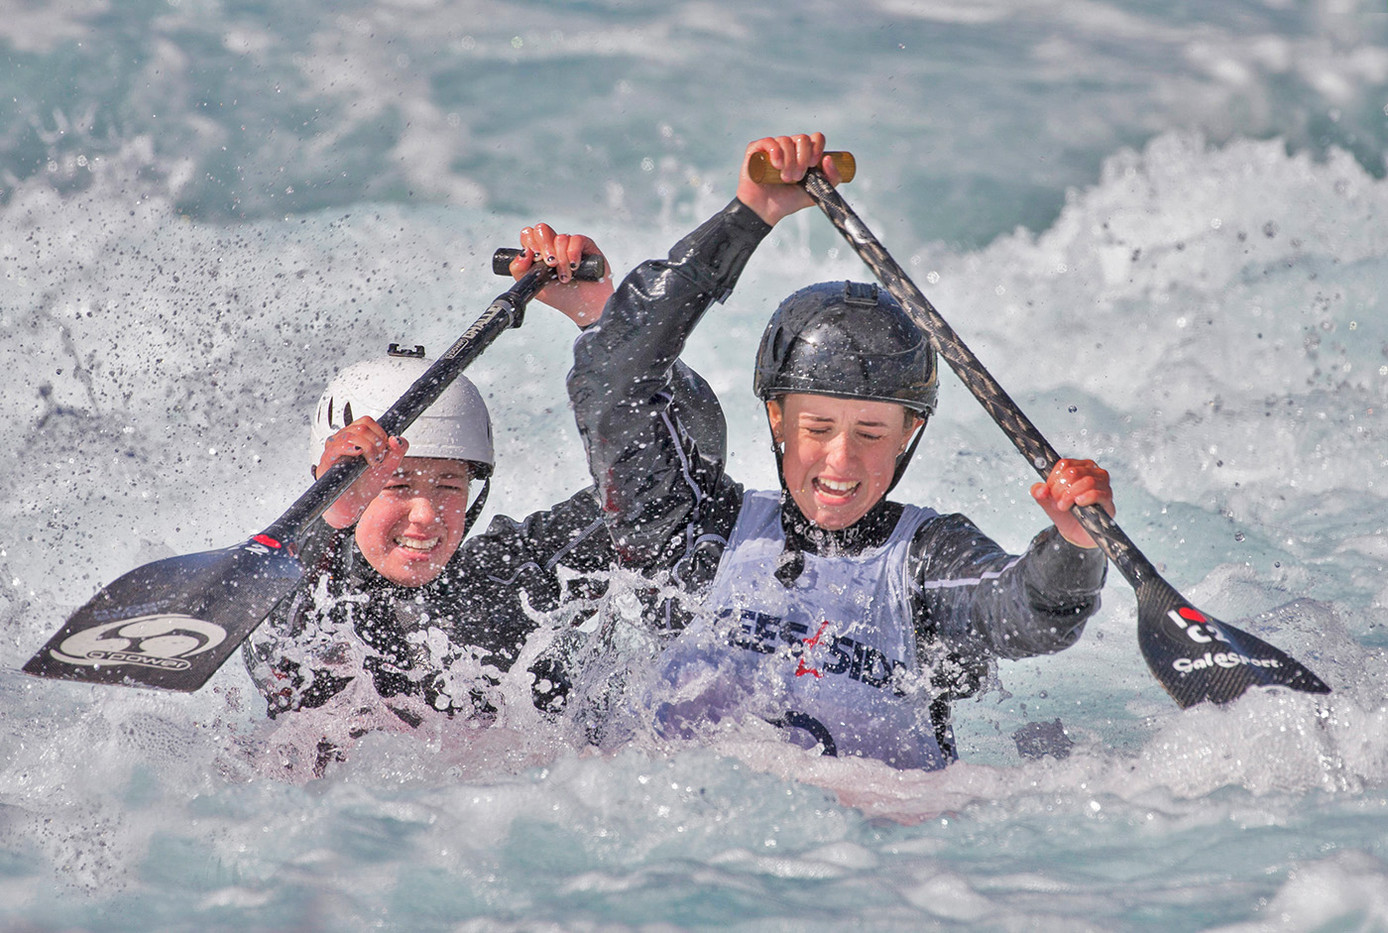 18 PADDLE FAST TO KEEP AFLOAT by John Hunt